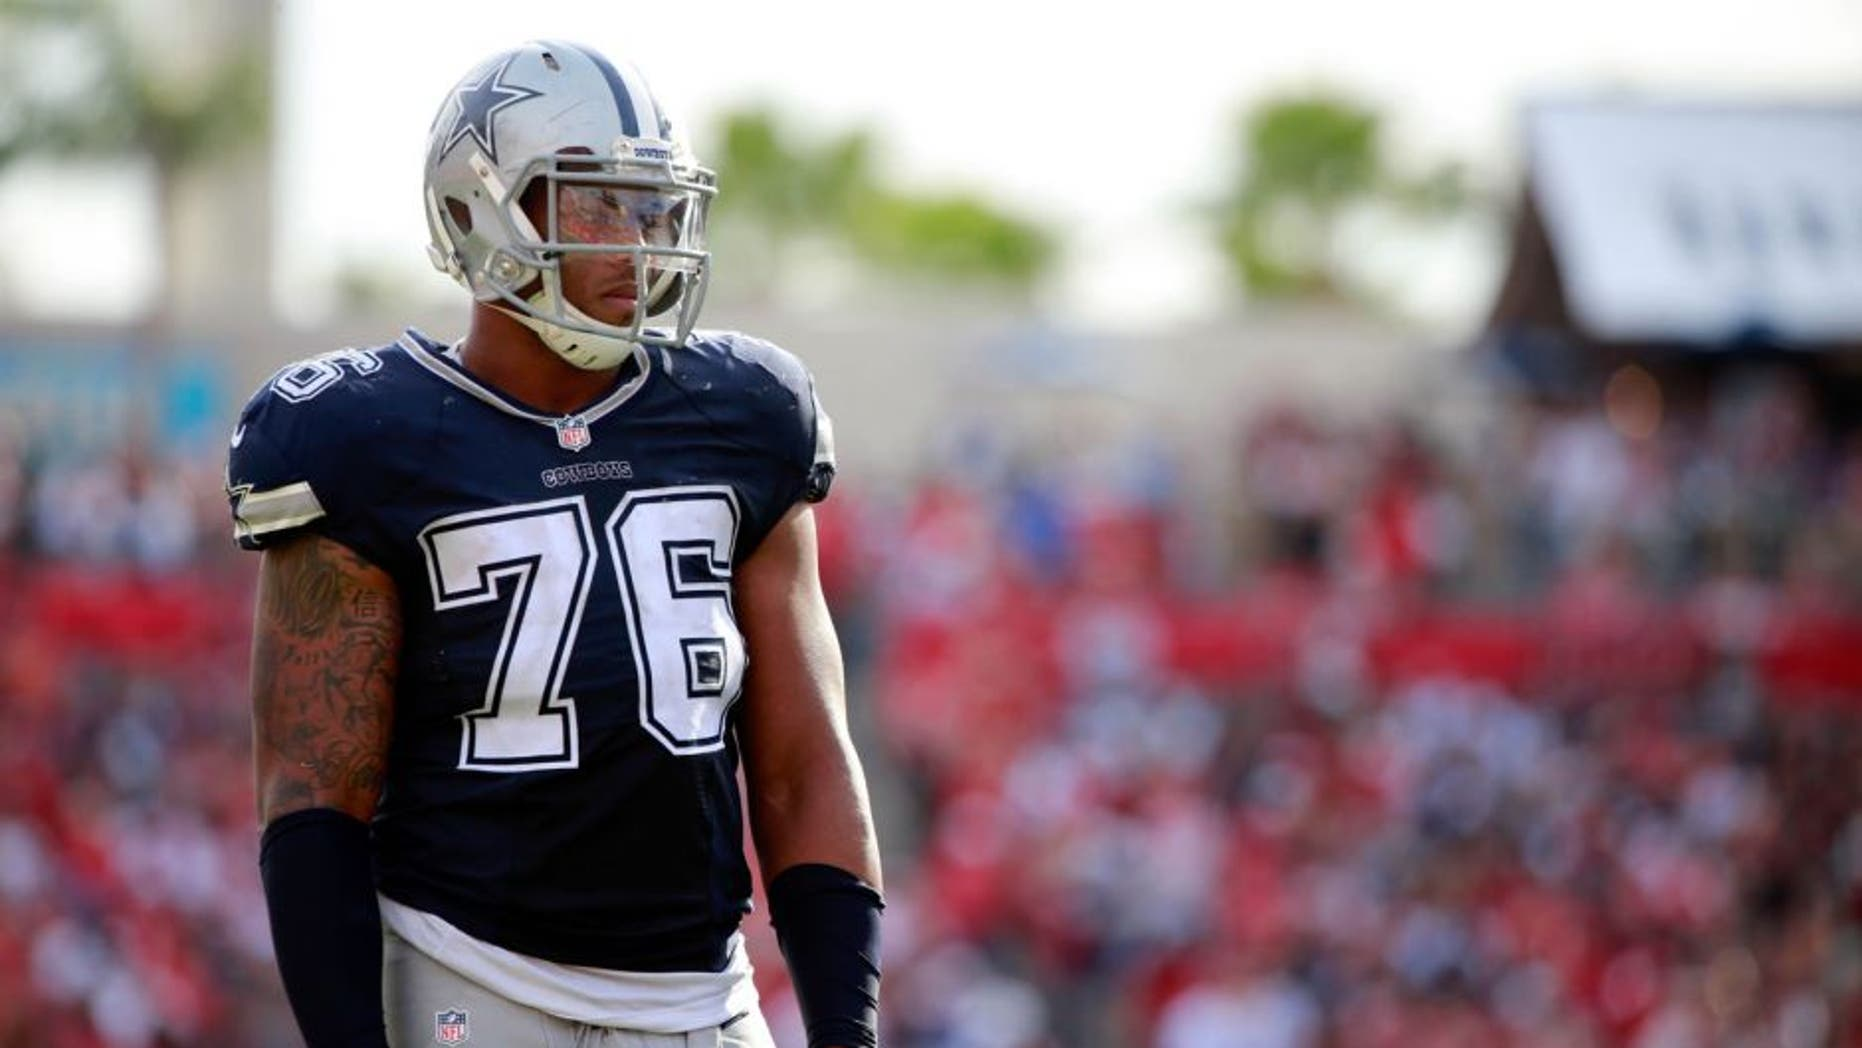 Nov 15, 2015; Tampa, FL, USA; Dallas Cowboys defensive end Greg Hardy (76) looks on against the Tampa Bay Buccaneers during the second half at Raymond James Stadium. Tampa Bay Buccaneers defeated the Dallas Cowboys 10-6. Mandatory Credit: Kim Klement-USA TODAY Sports